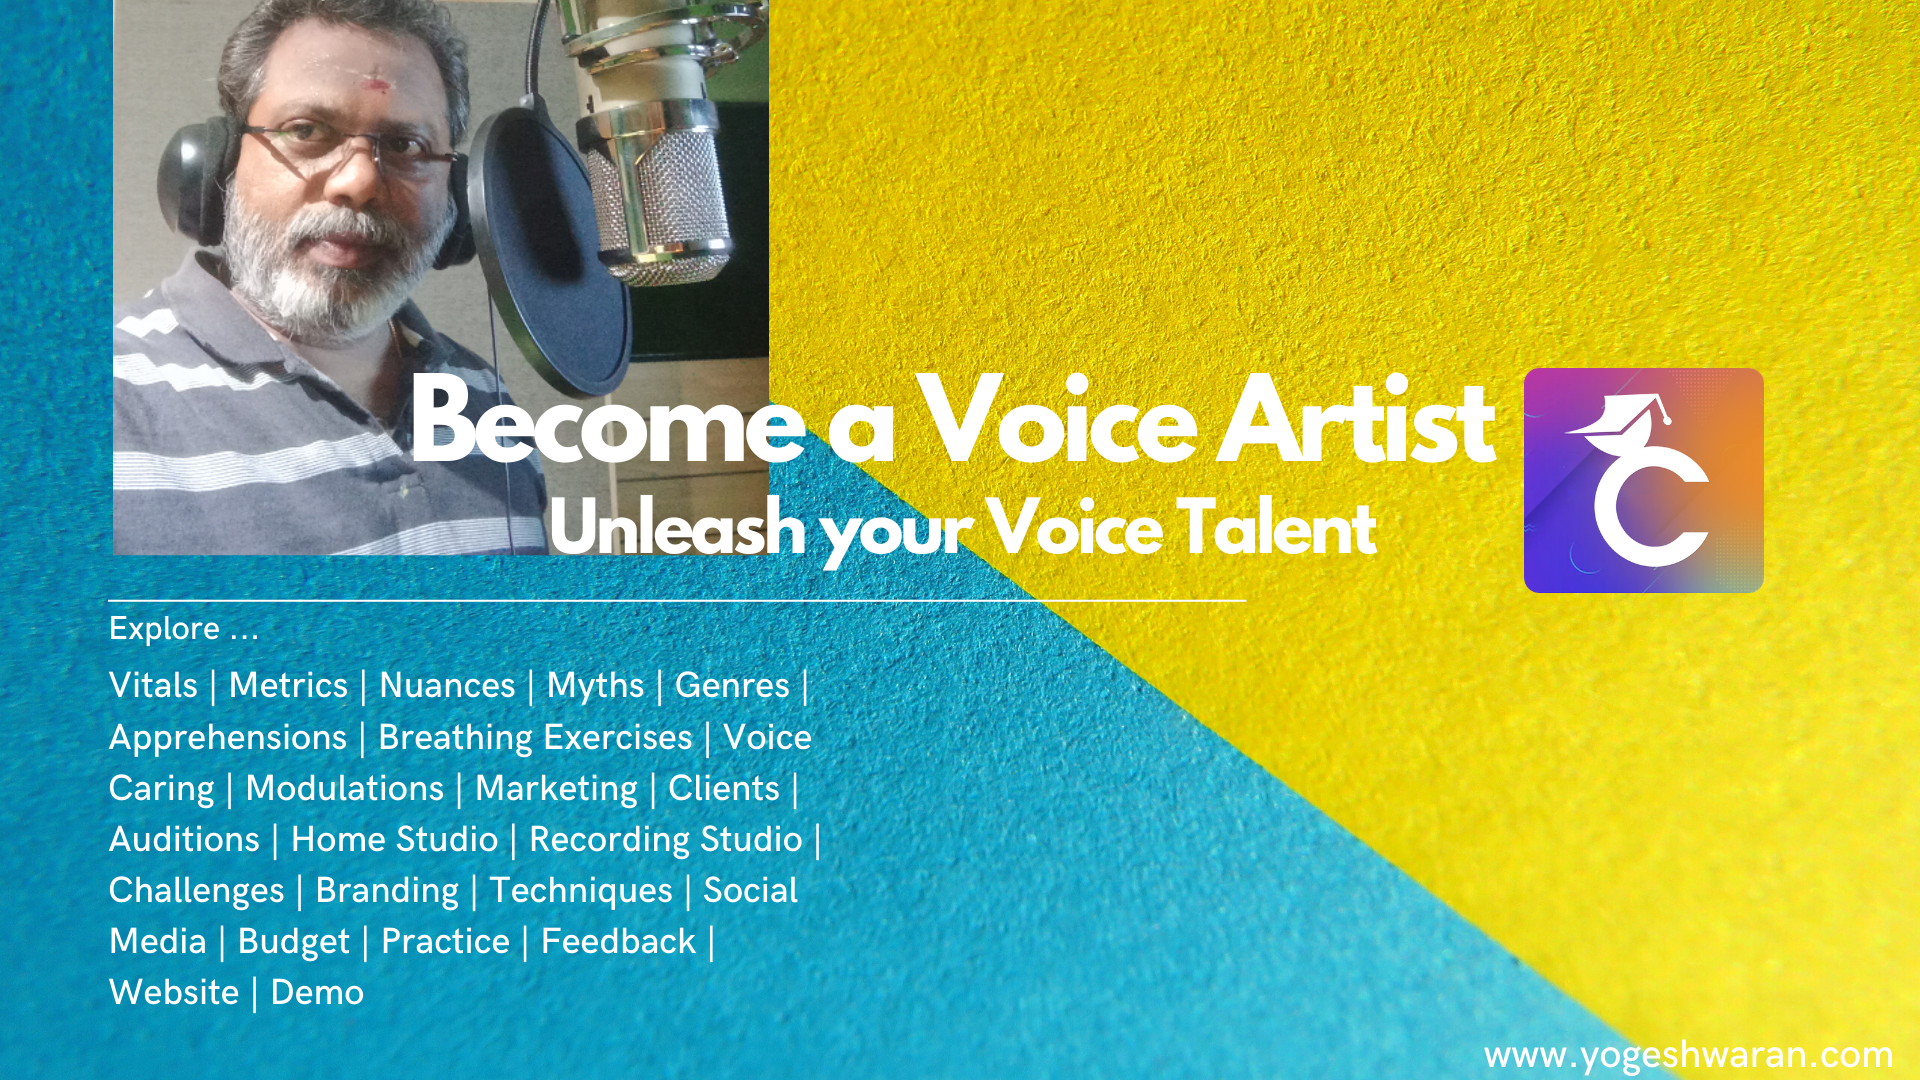 Become a Voice Artist - Unleash your Voice Talent